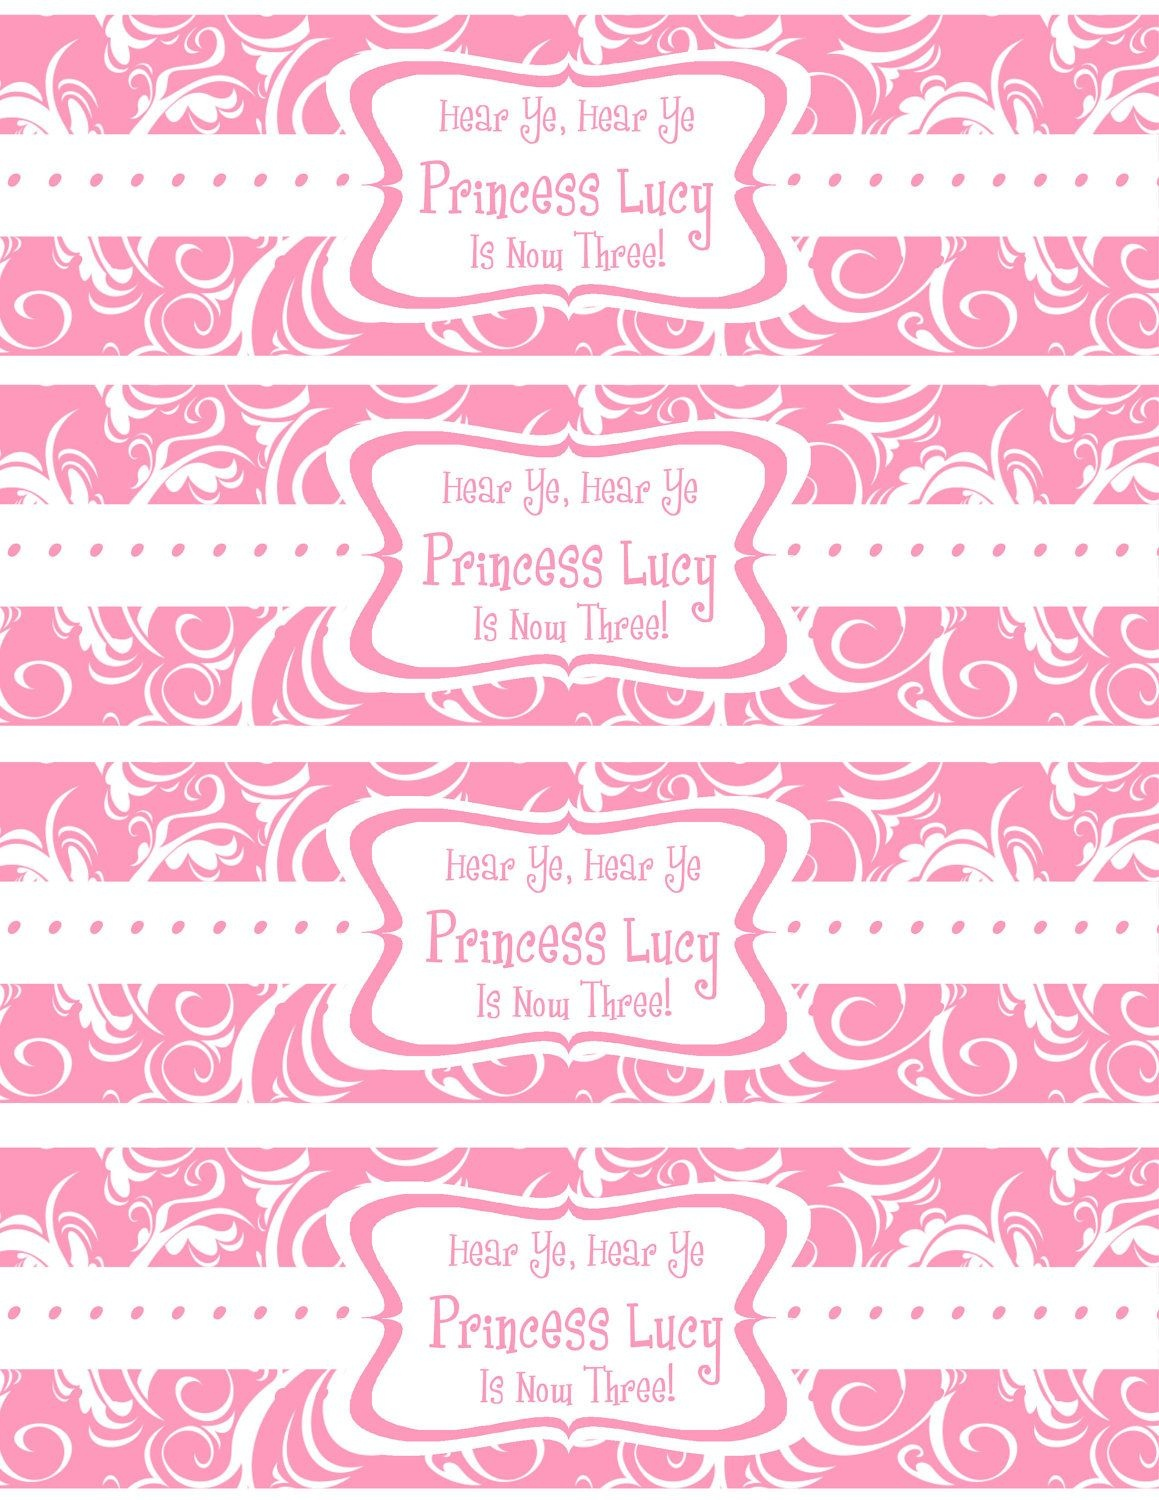 Free Printable Water Bottle Labels Template   Kreatief   Printable - Free Printable Paris Water Bottle Labels